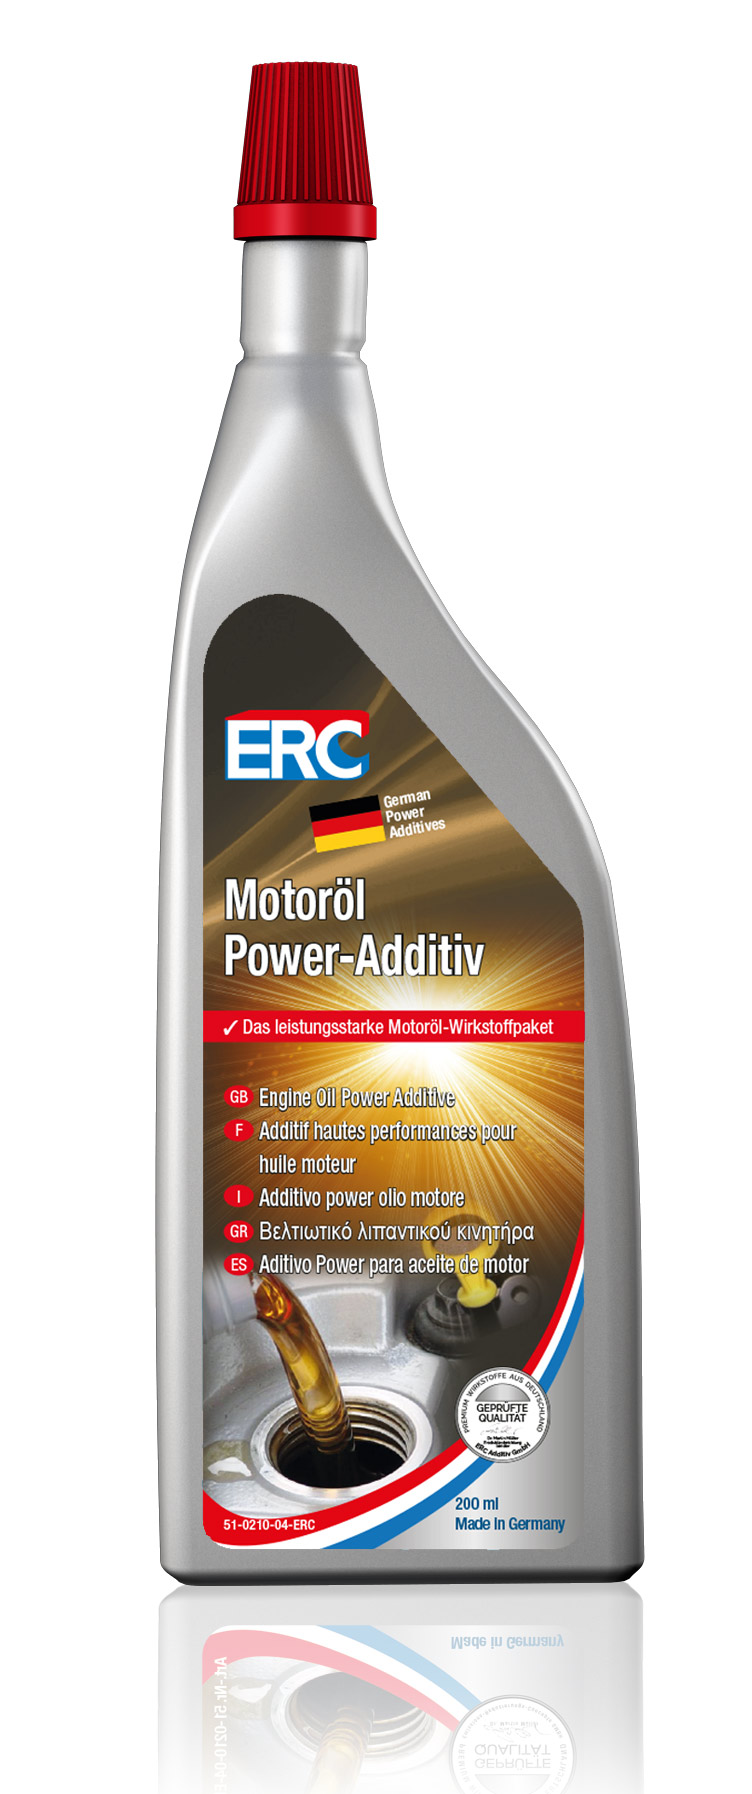 10 x 200 ml ERC MotorOel Power Additiv Öl Additiv Ölzusatz Otto u. Diesel Motoren